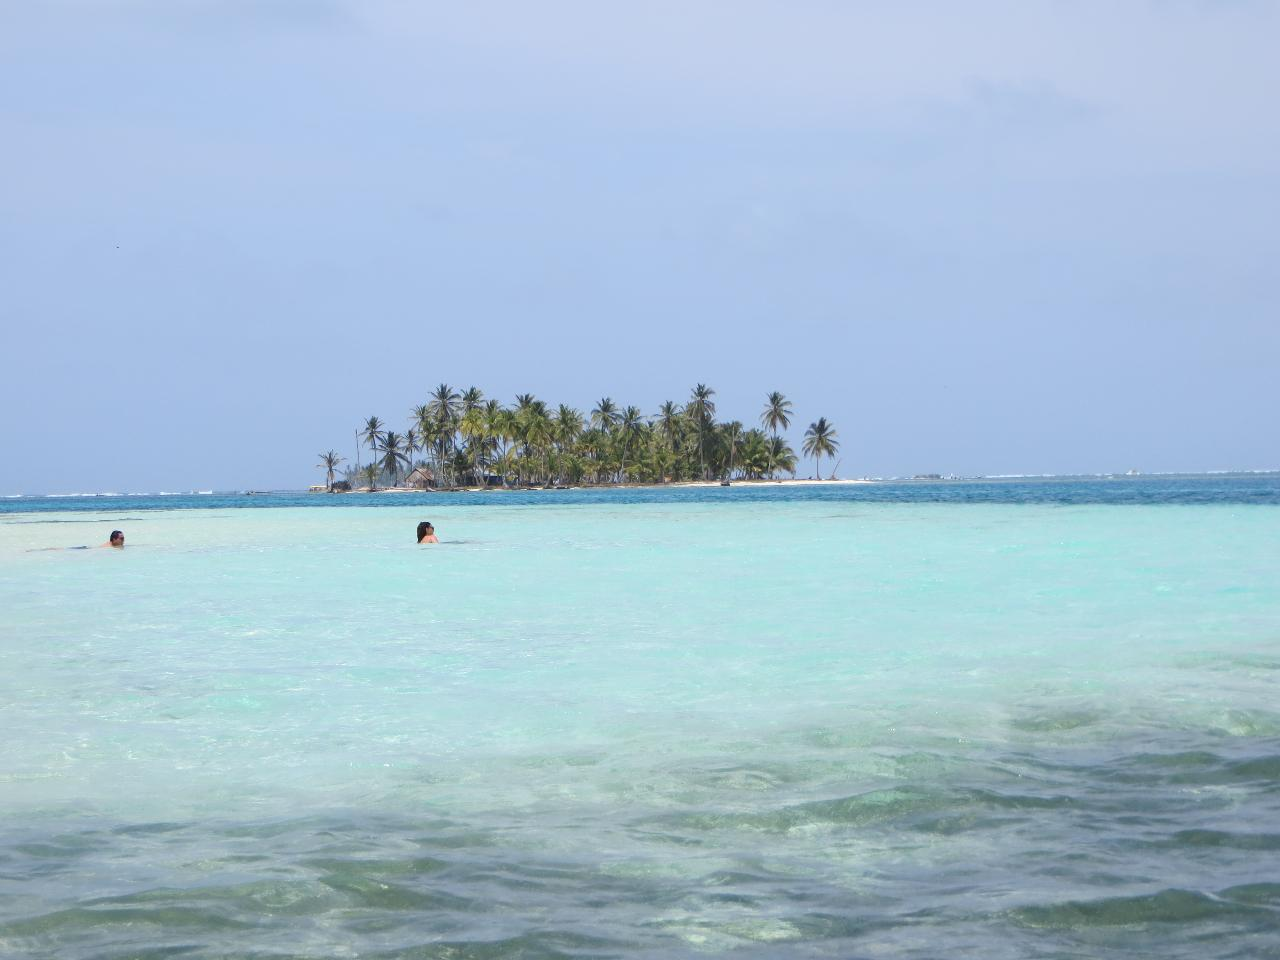 PANAMA - Escape to the Islands of San Blas